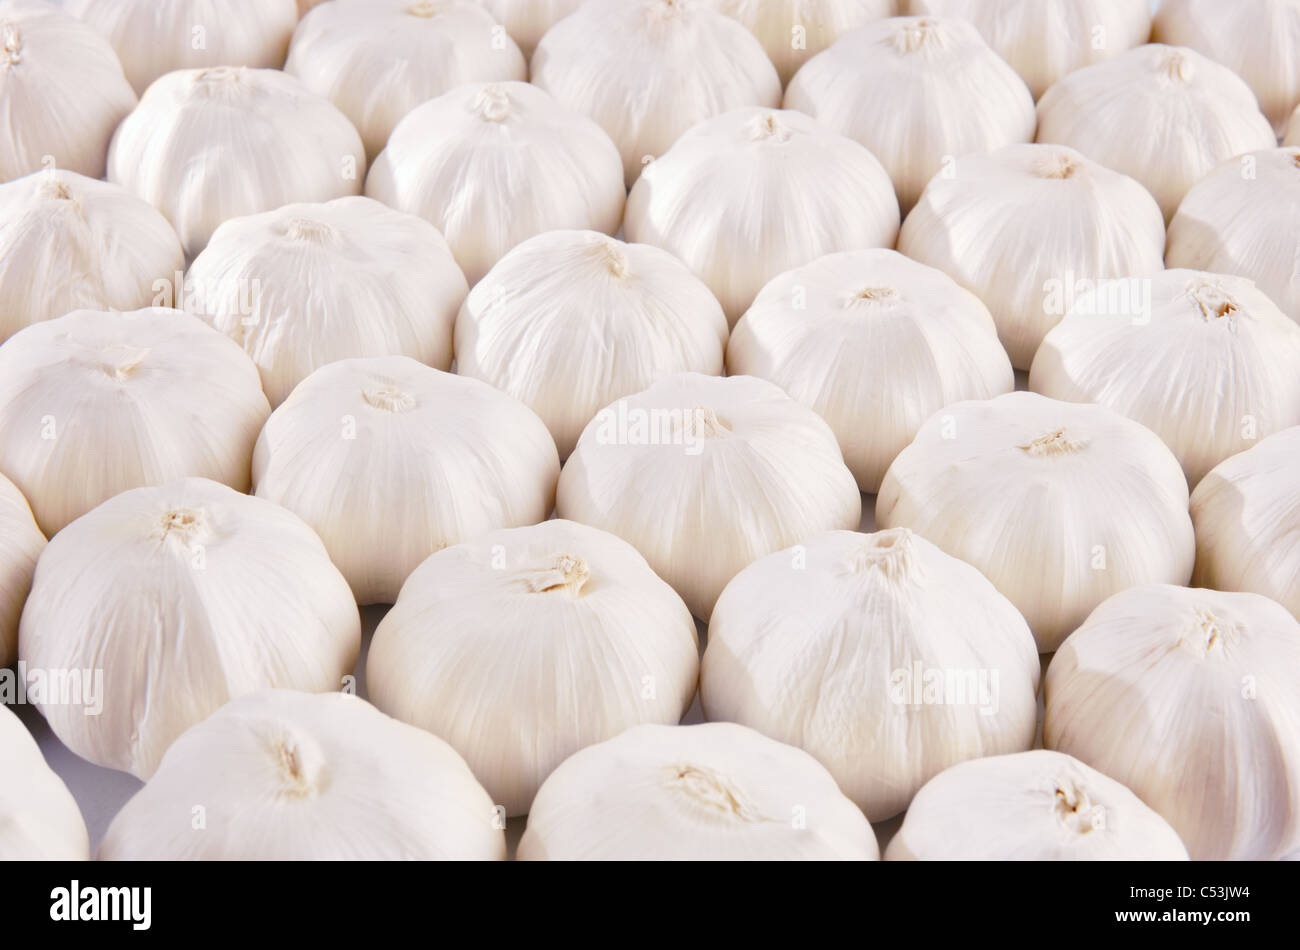 Background with lots of garlic bulbs - Stock Image